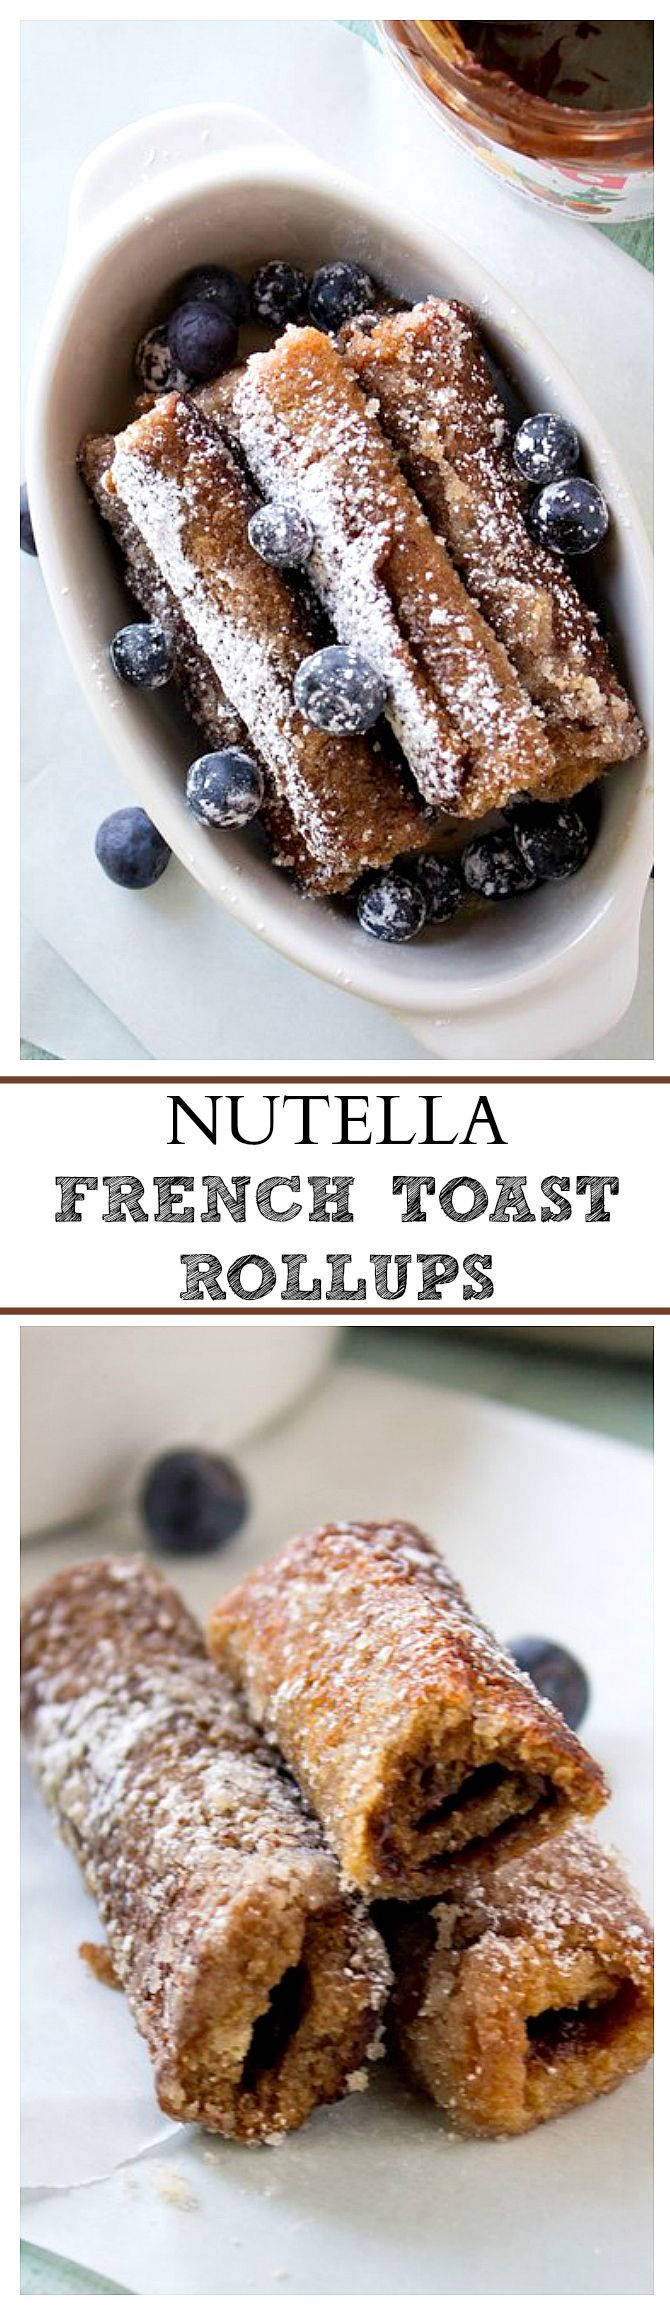 These delicious Nutella French Toast Rollups could not be easier to make and they are always a big hit at breakfast!